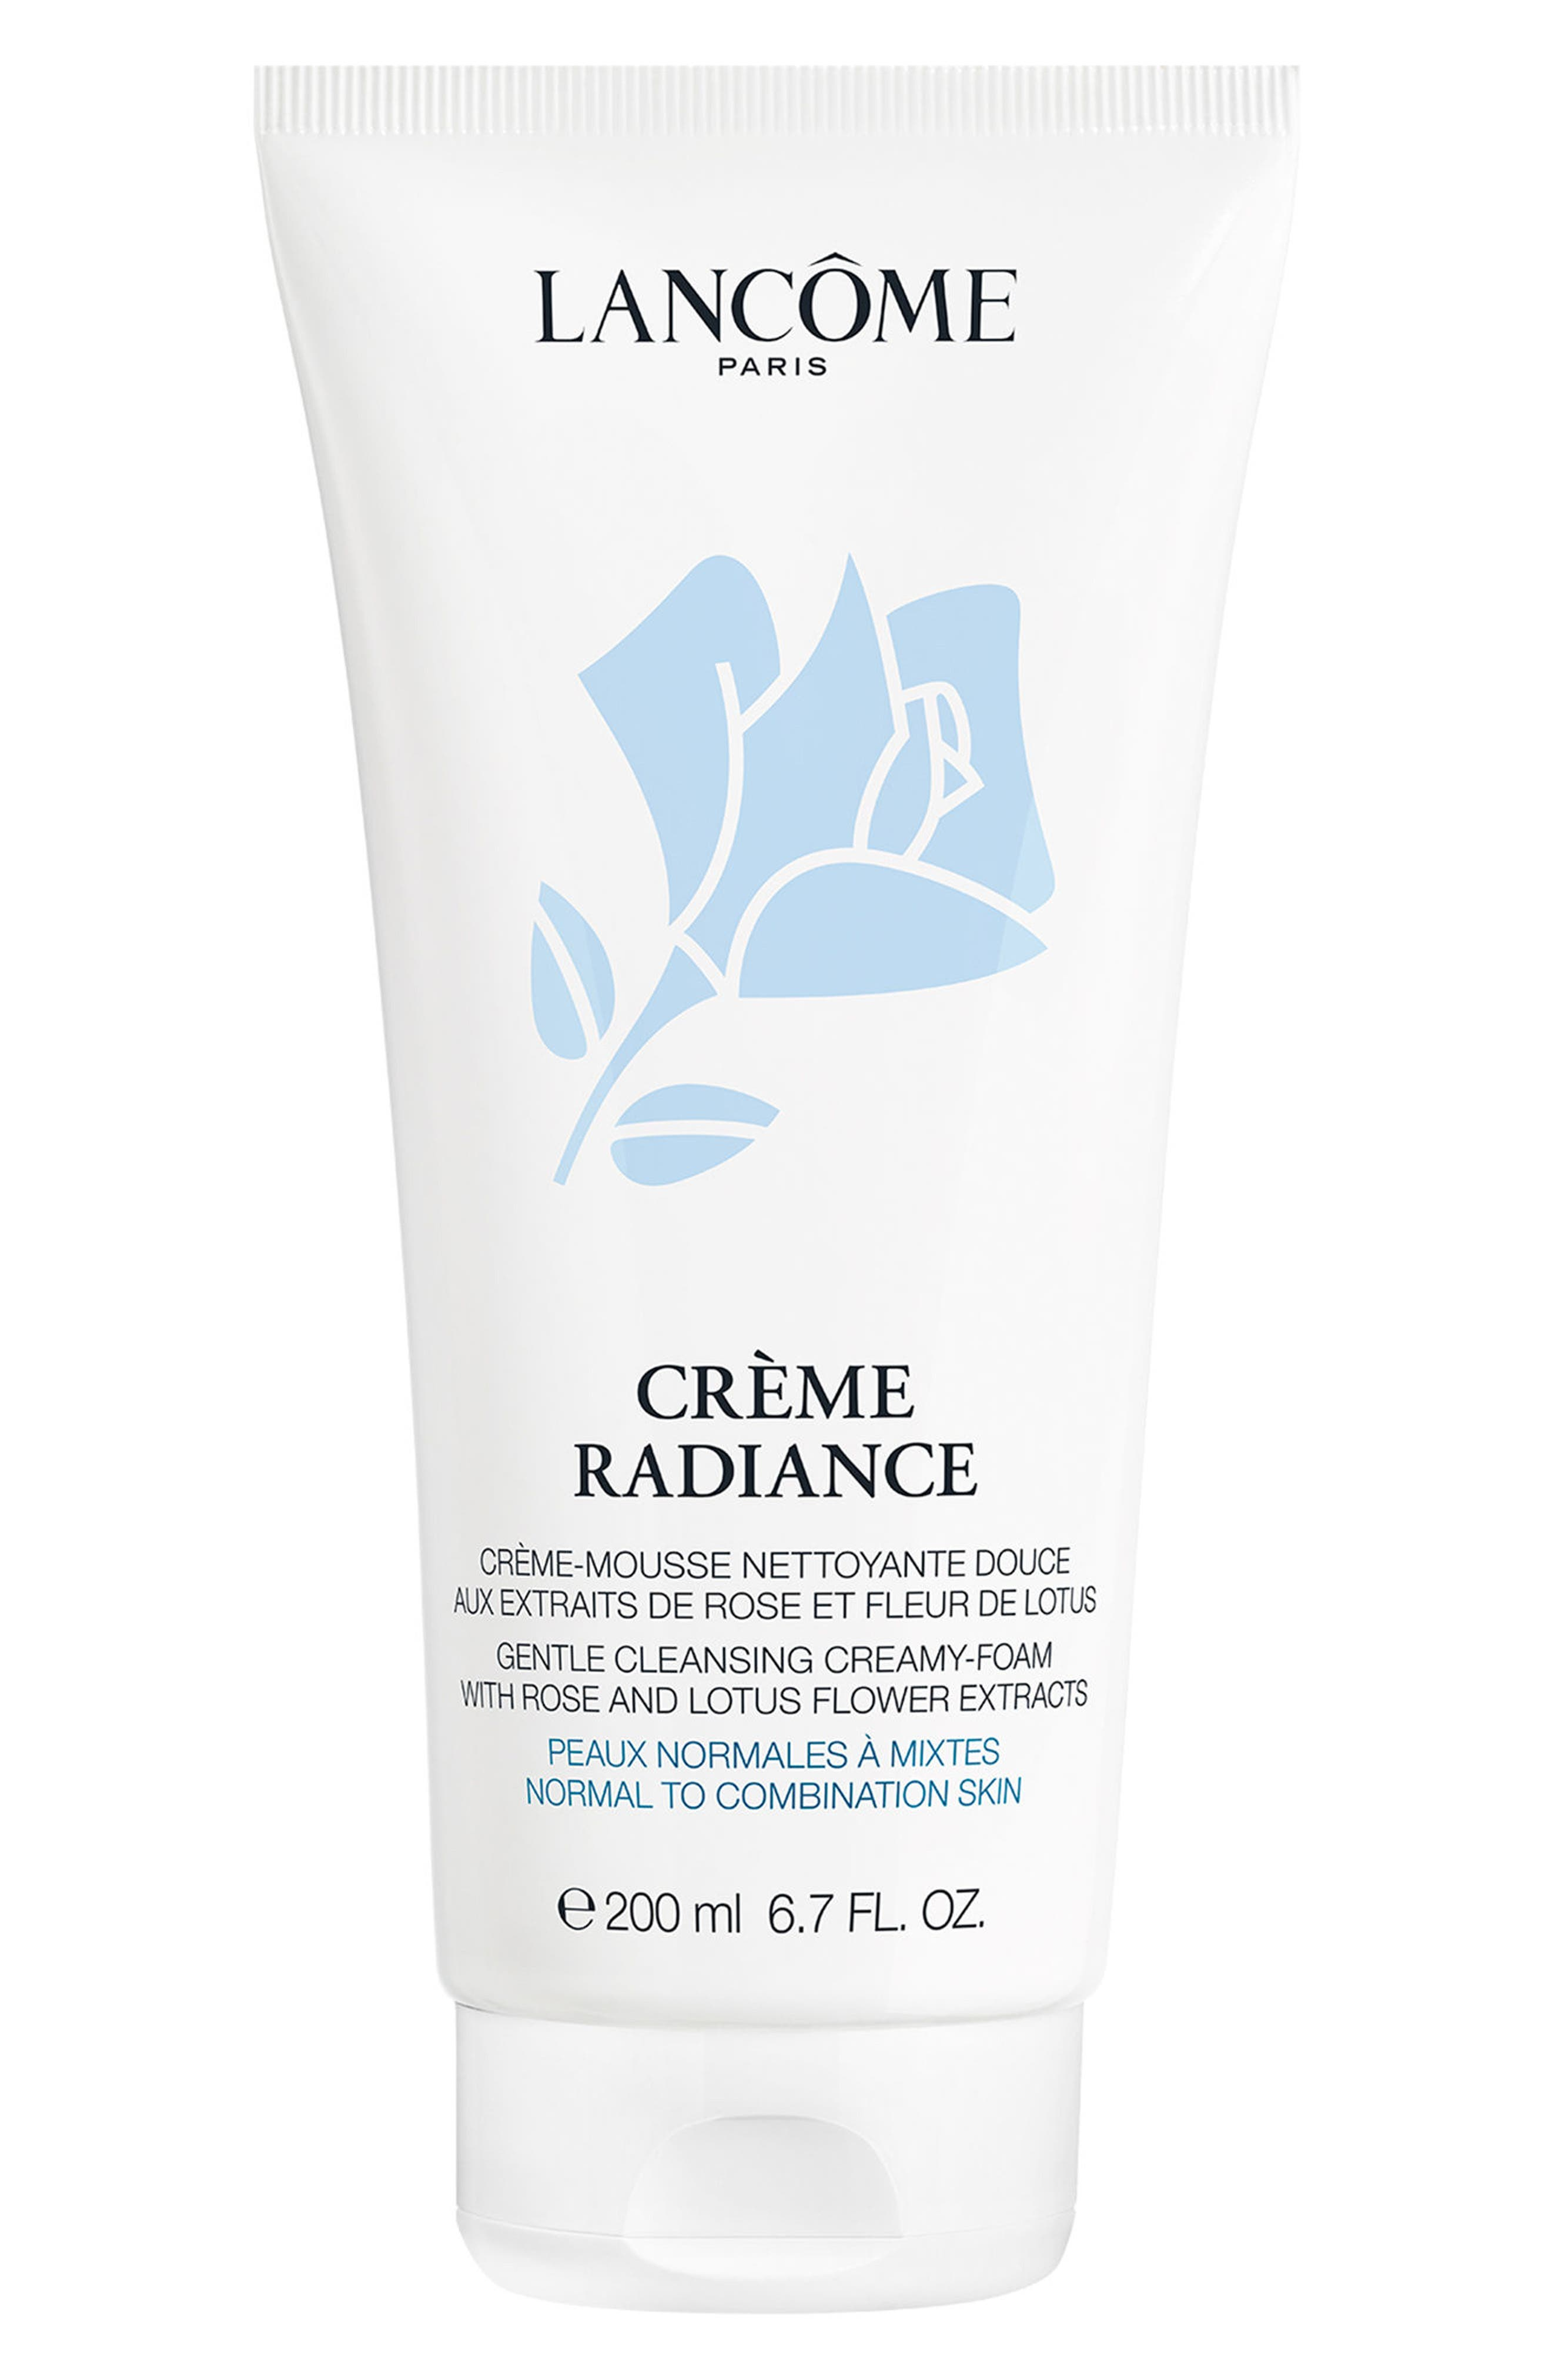 Lancôme Crème Radiance Clarifying Cleanser (6.7 oz.) ($39 Value)